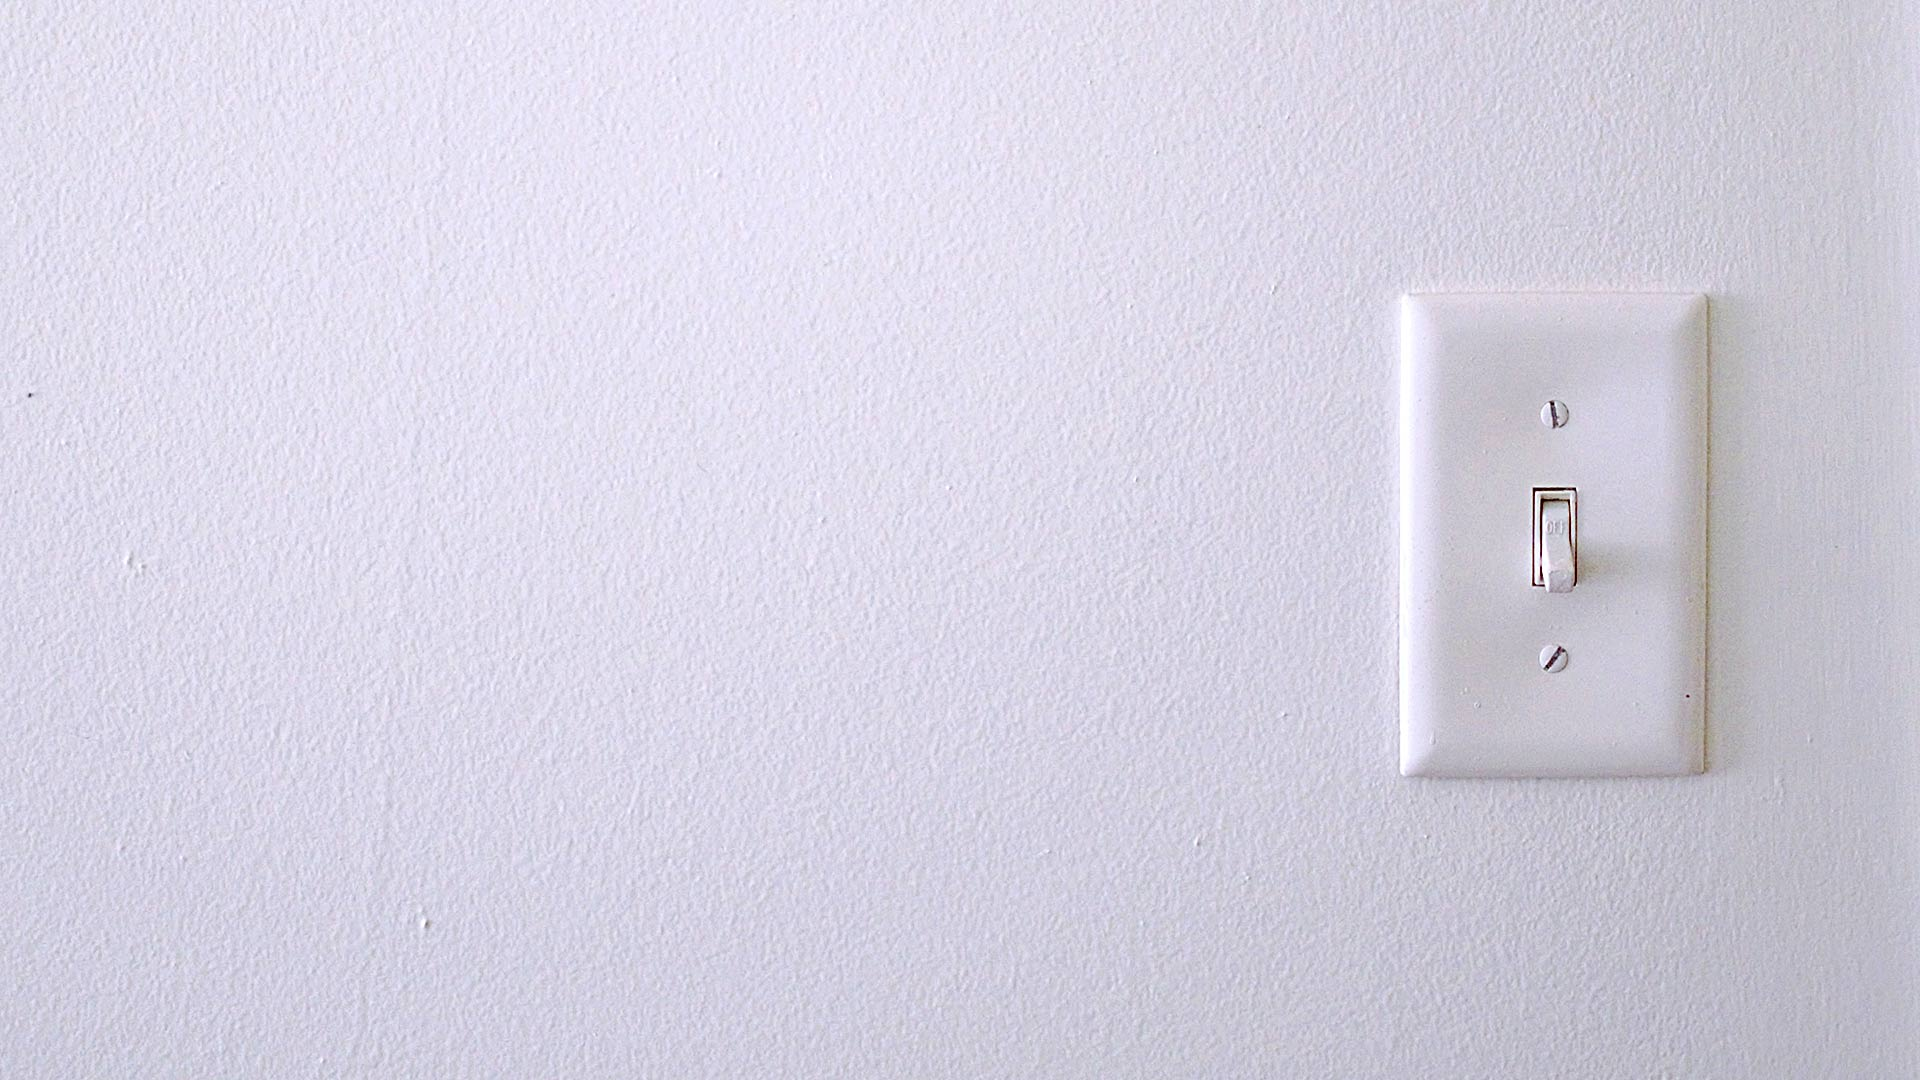 Single-pole light switch on a white wall